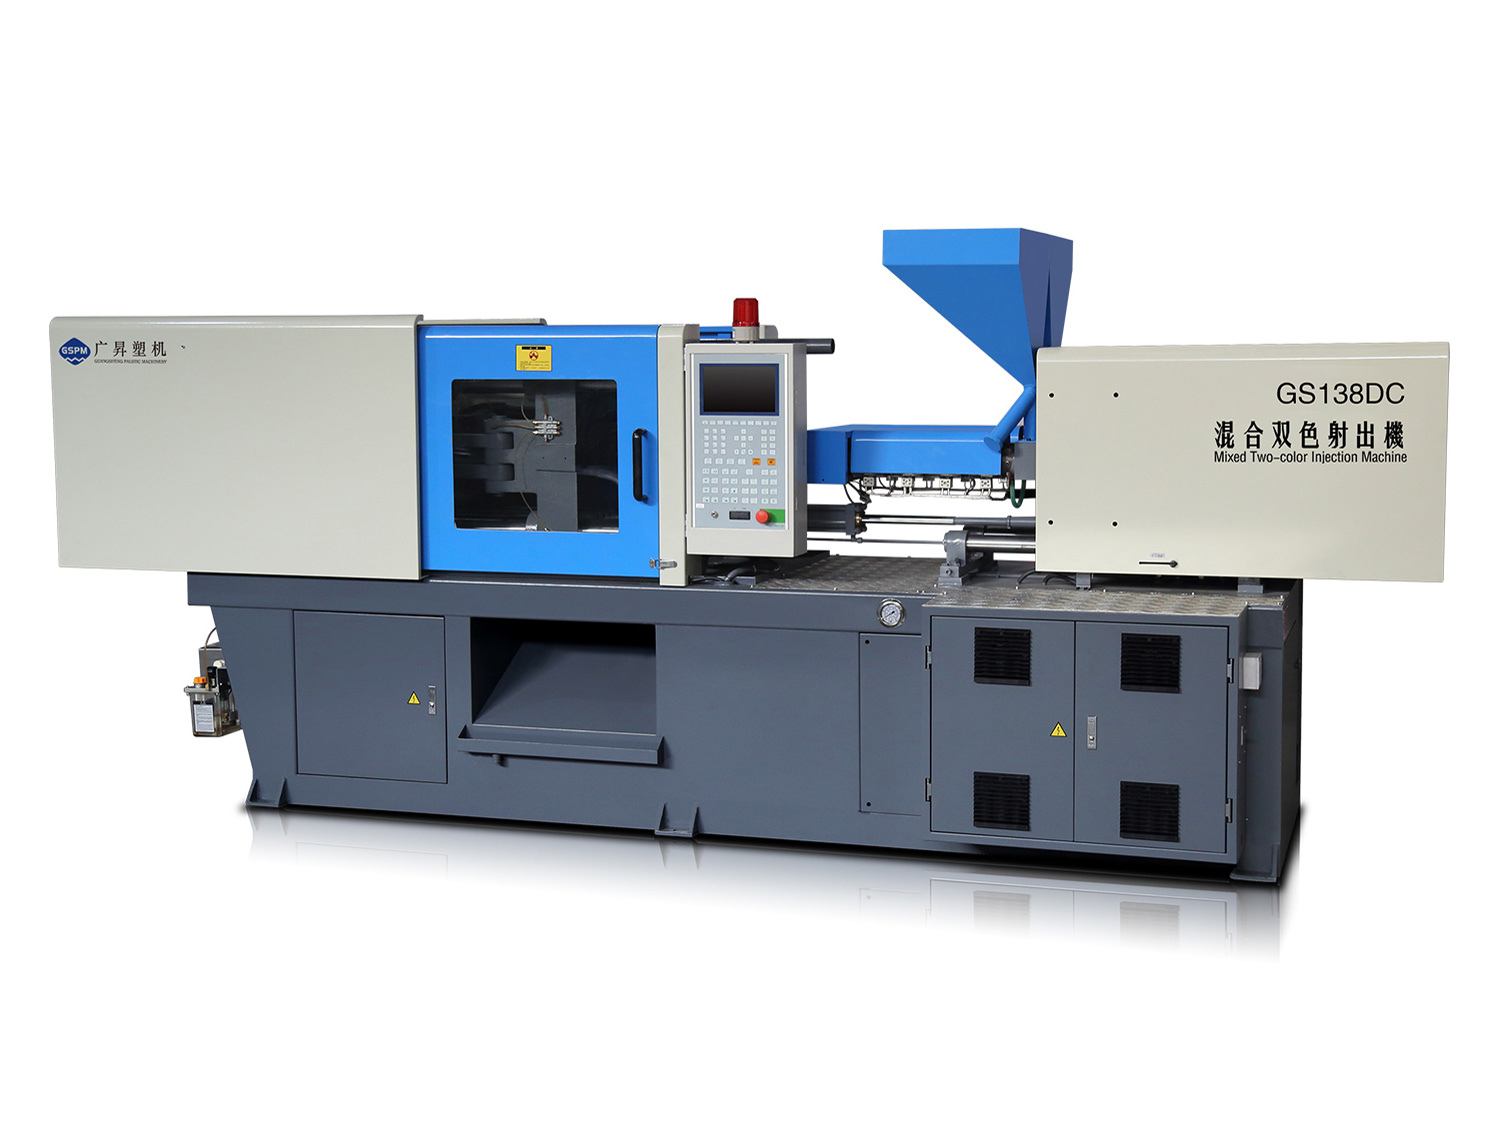 GS138DC Mixed two-color twin-screw injection molding machine